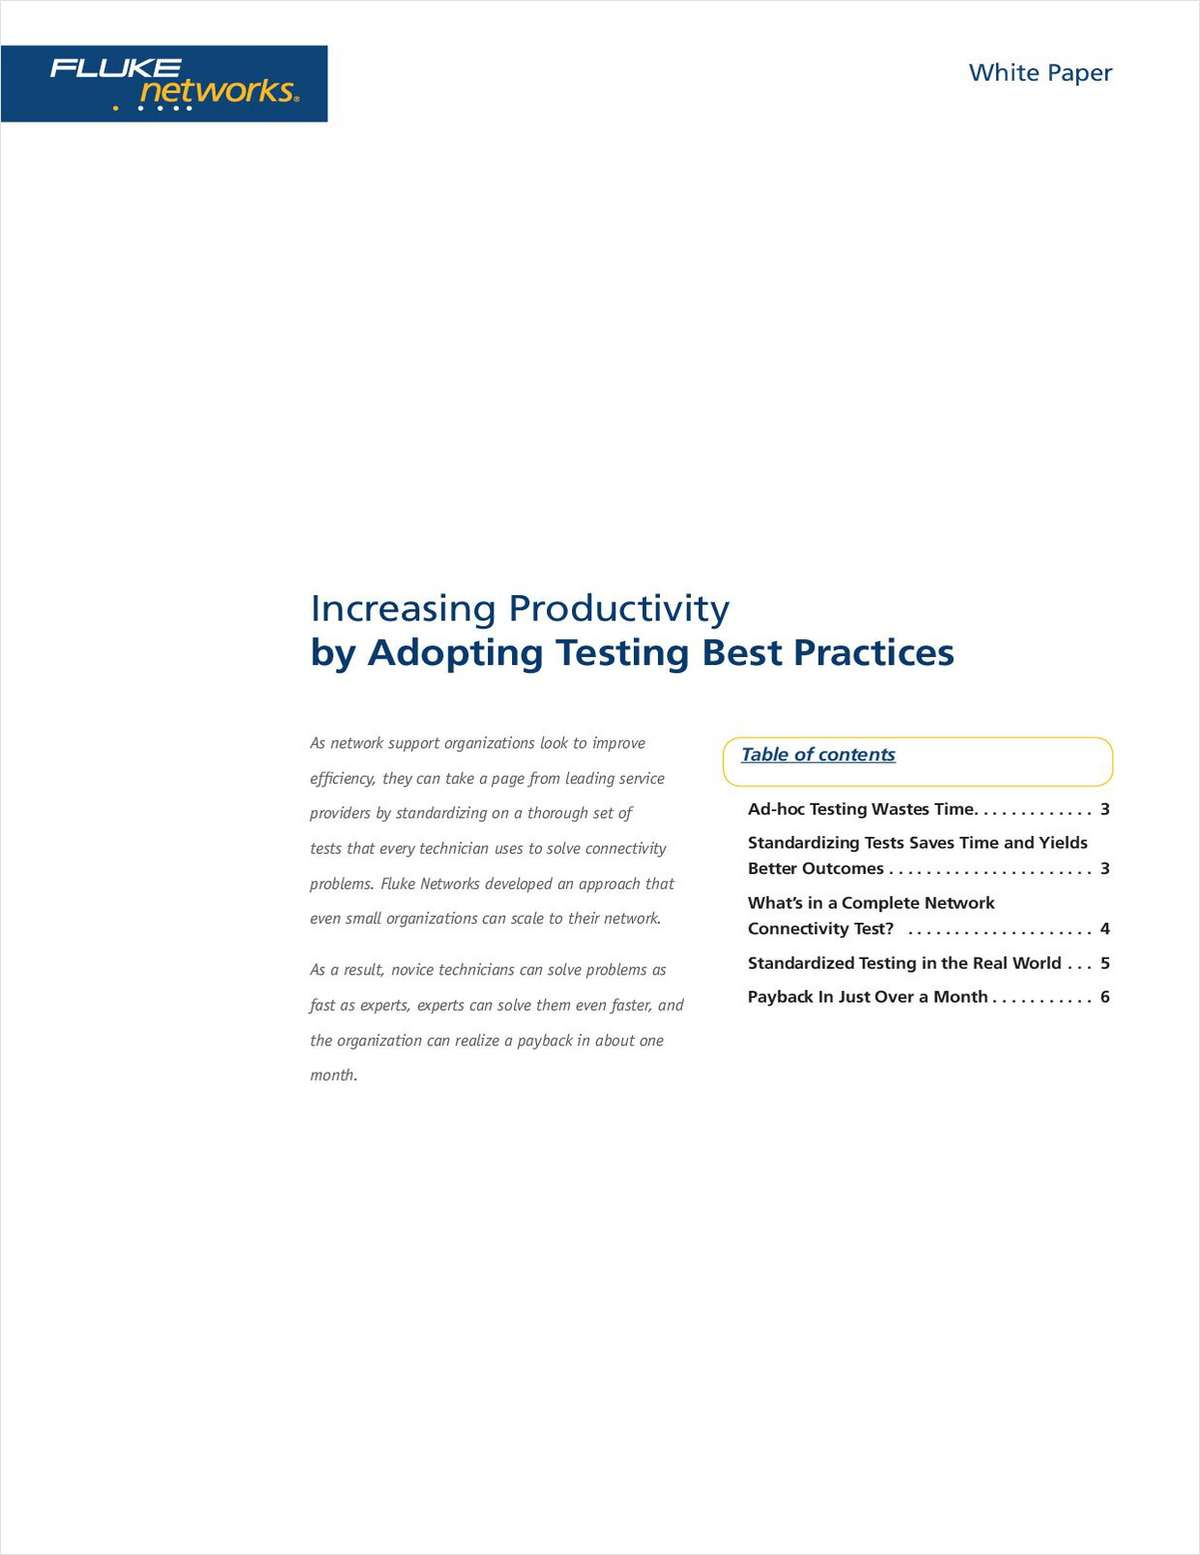 Increasing Productivity by Adopting Testing Best Practices